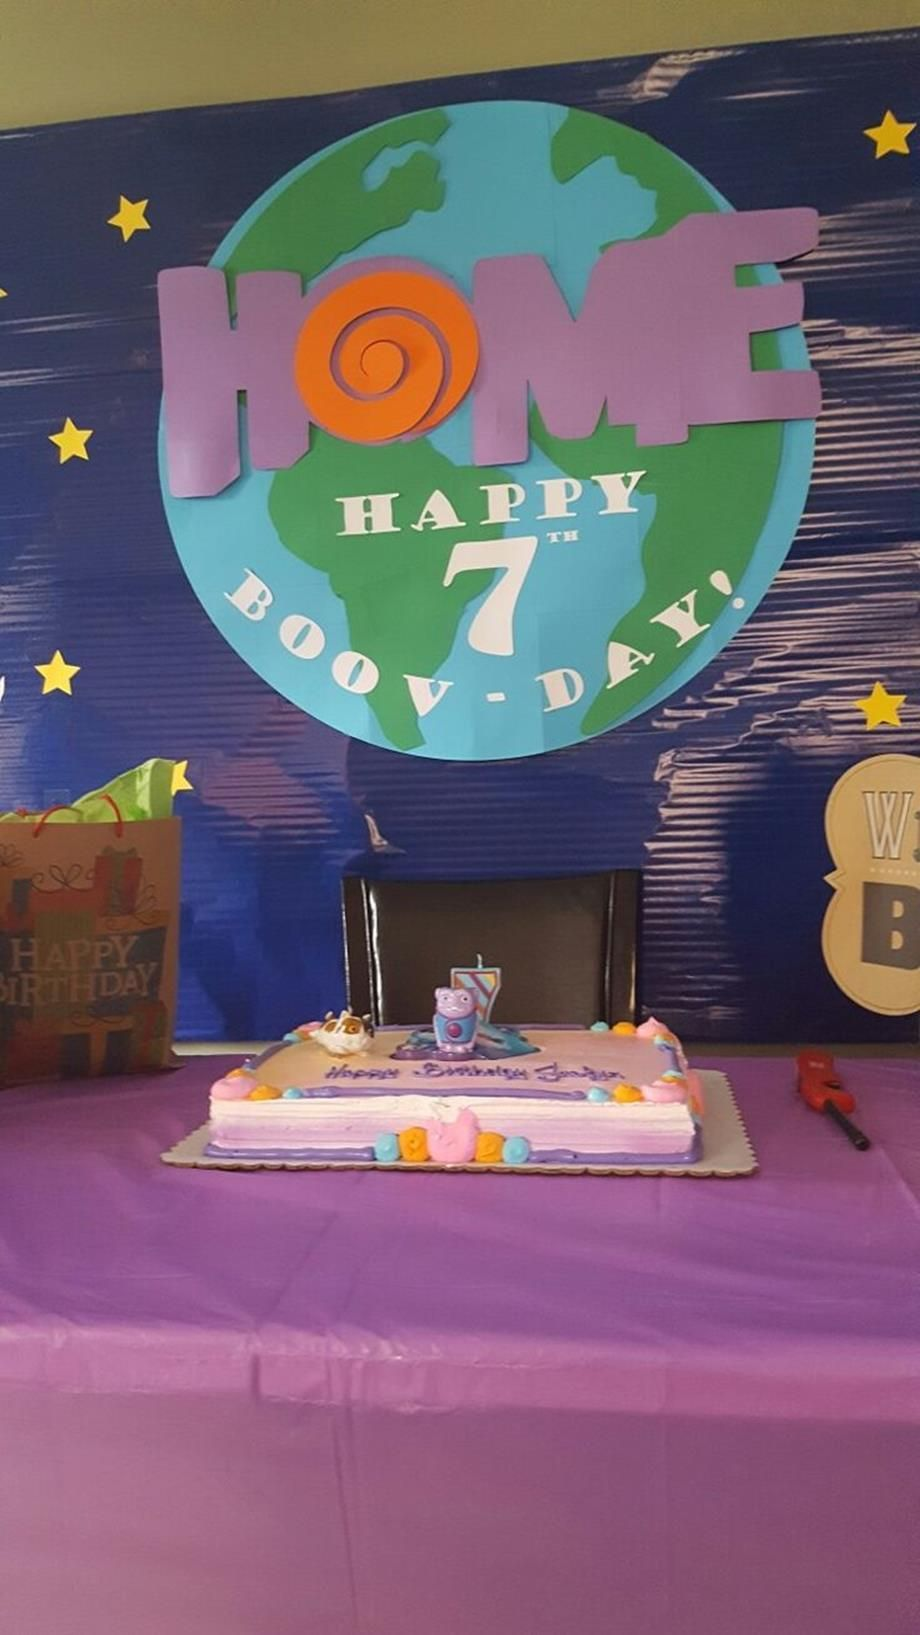 Kids Birthday Party Decoration Ideas At Home 1 Birthday Party At